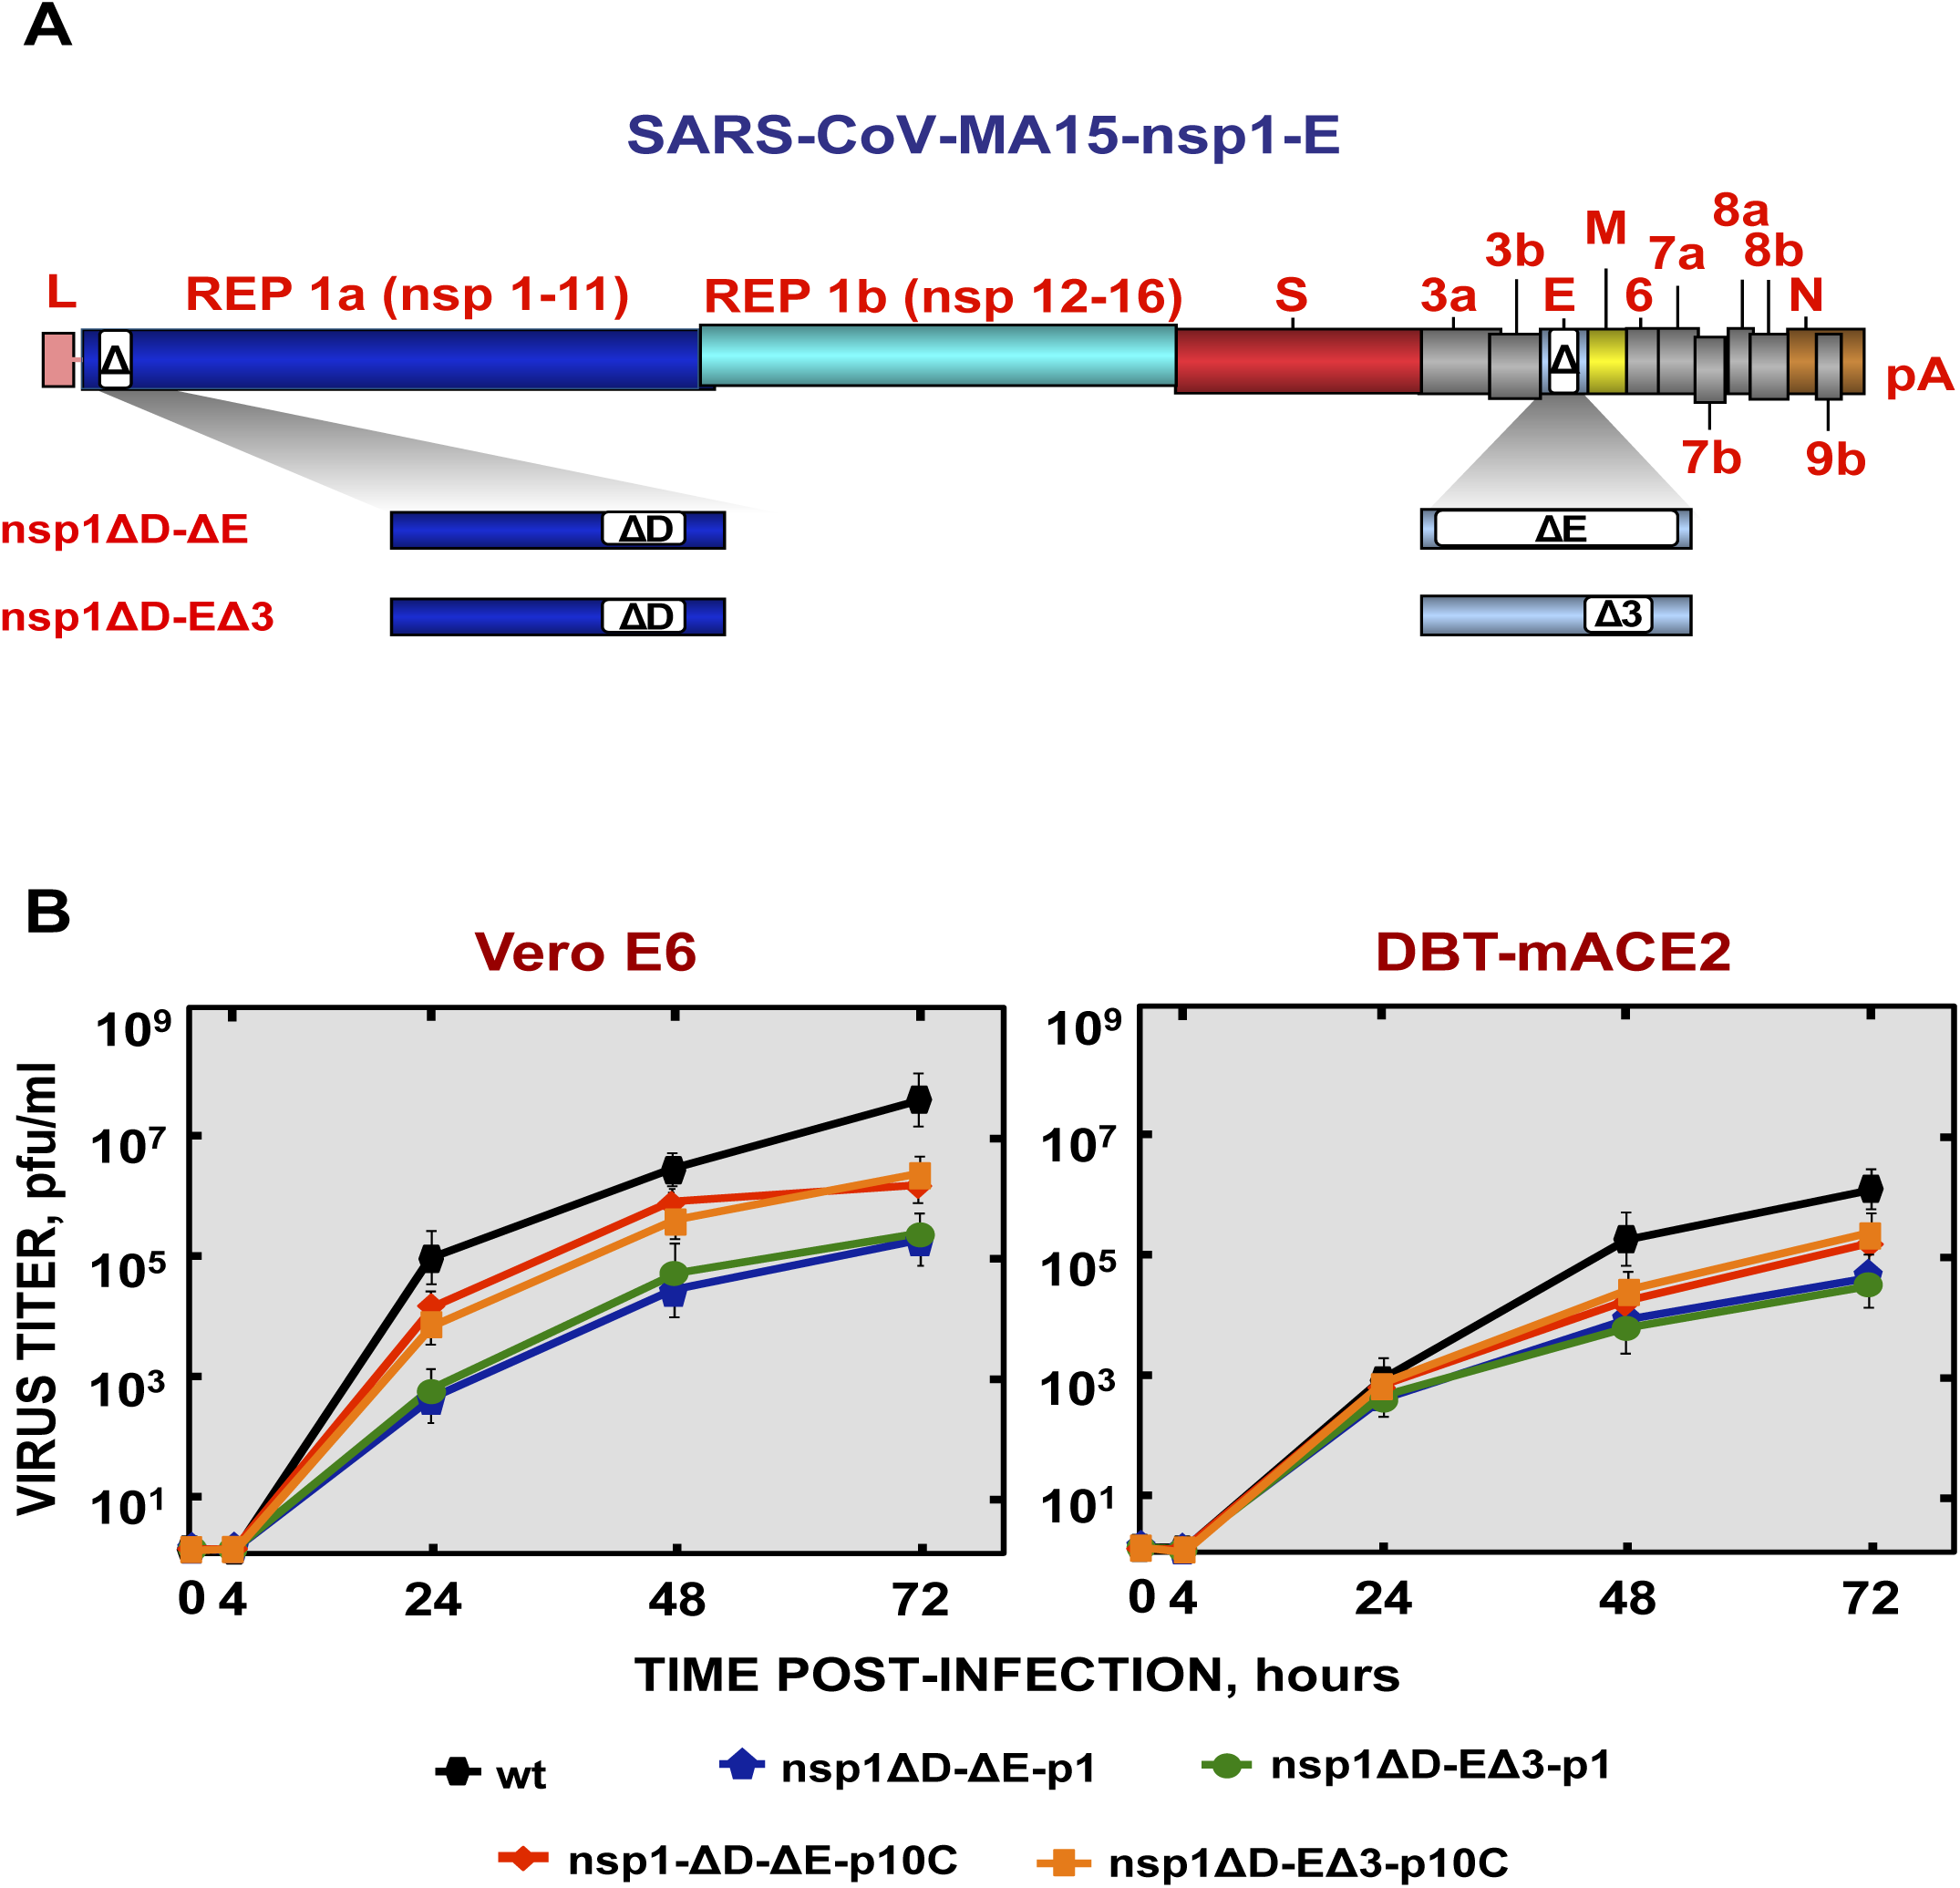 Generation and growth kinetics of SARS-CoV mutants with deletions in both nsp1 and E genes.